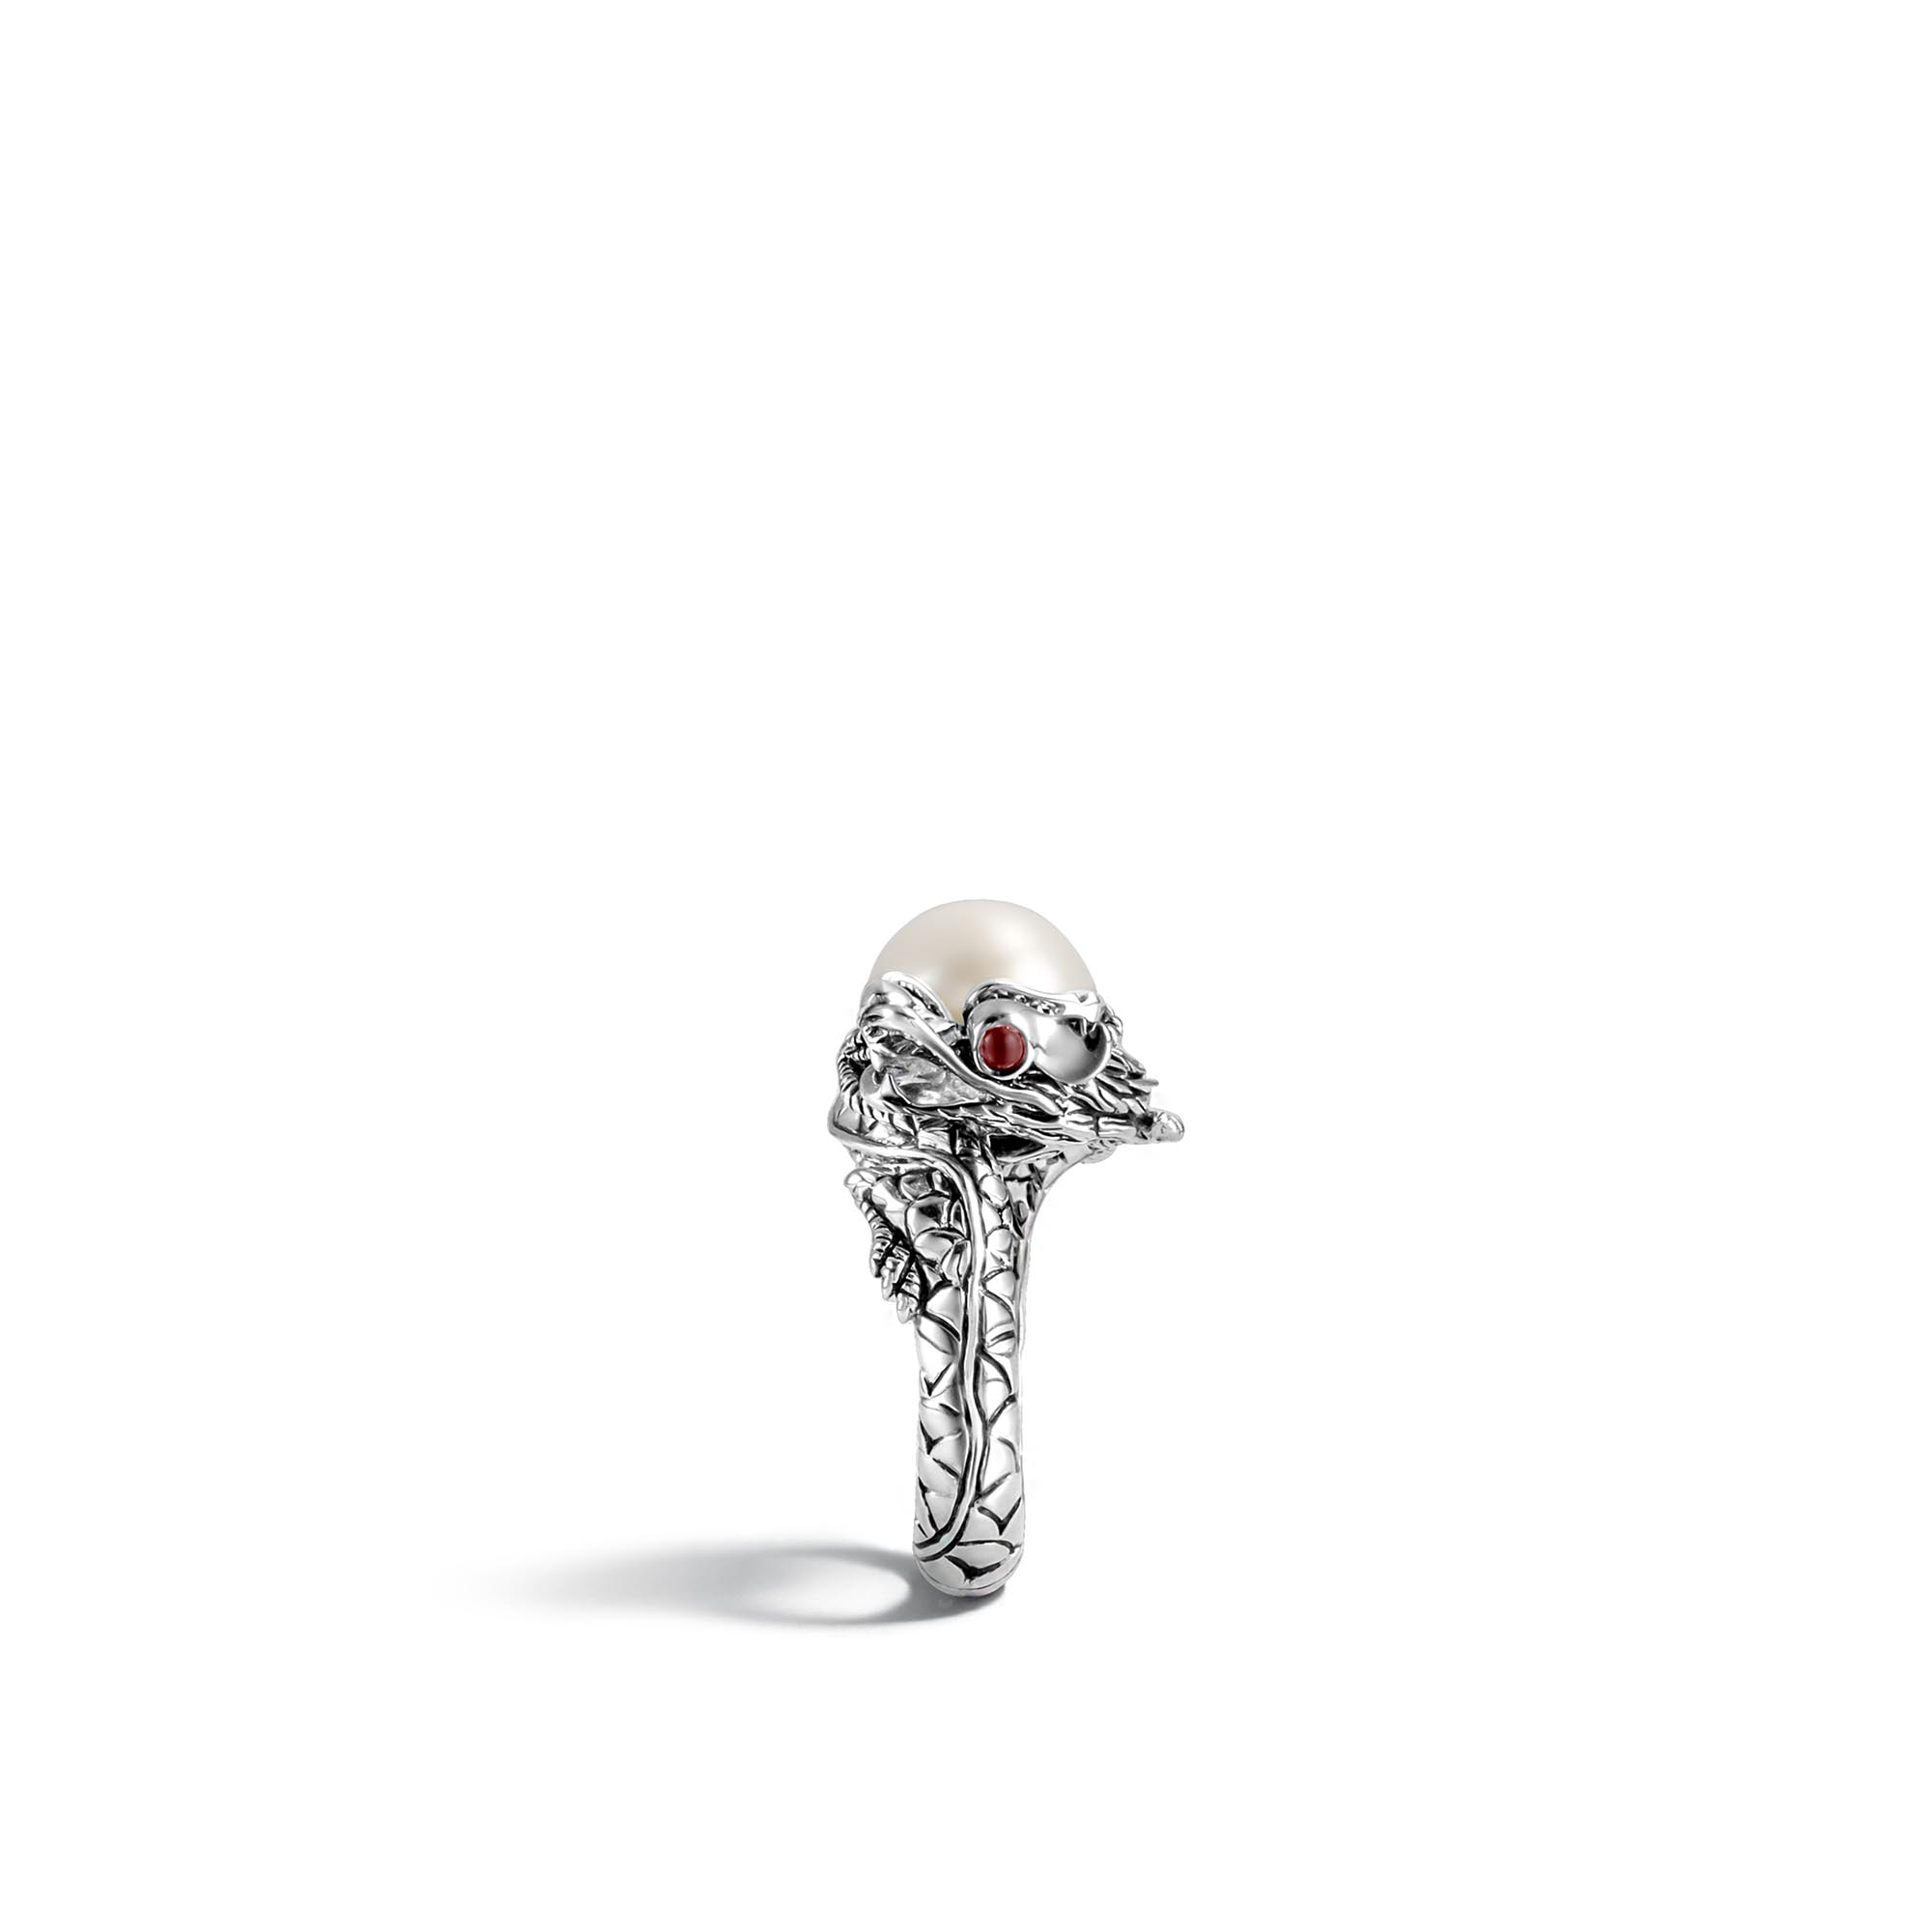 Legends Naga Center Stone Ring in Silver, Pearl and Gemstone, White Fresh Water Pearl, large